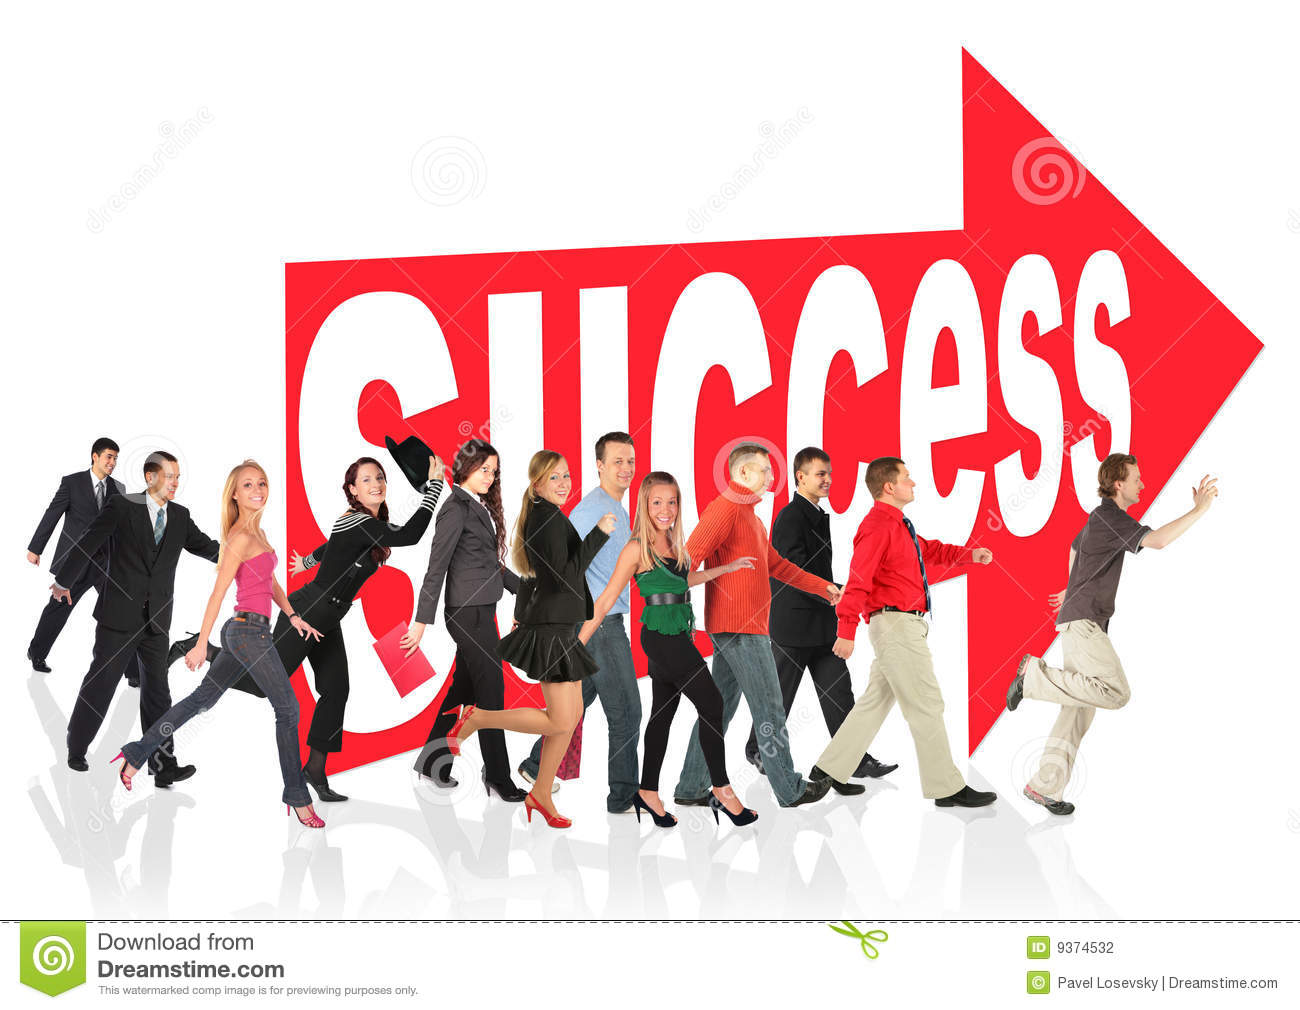 People run to success following the arrow sign